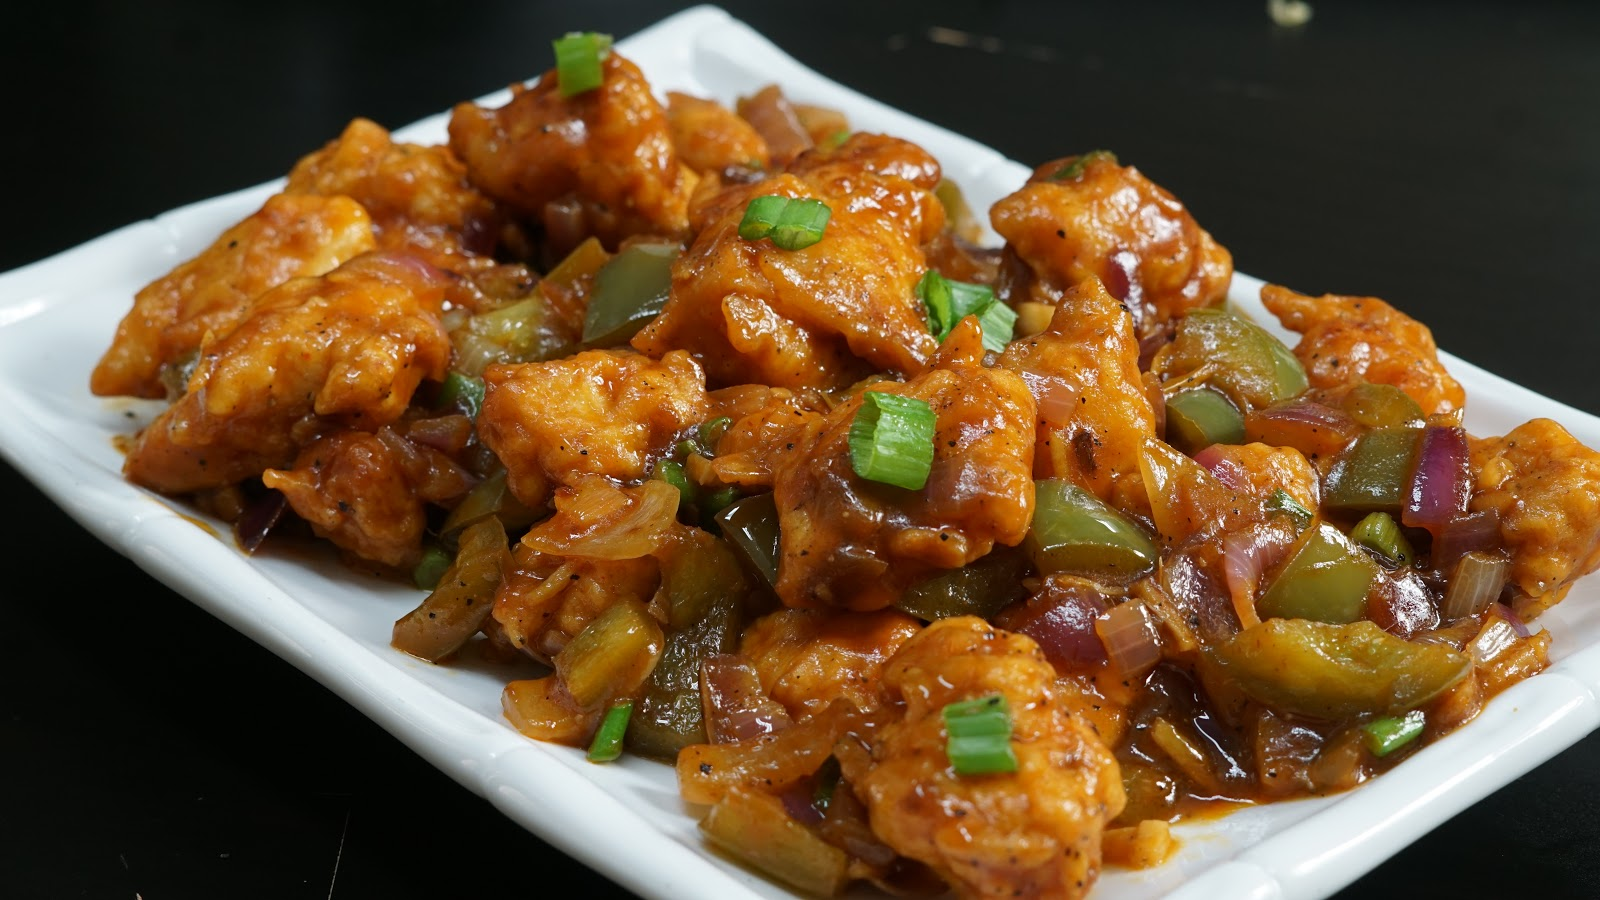 Chicken manchurian recipe steffis recipes please click here to watch chicken manchurian in tamil madras samayal forumfinder Image collections